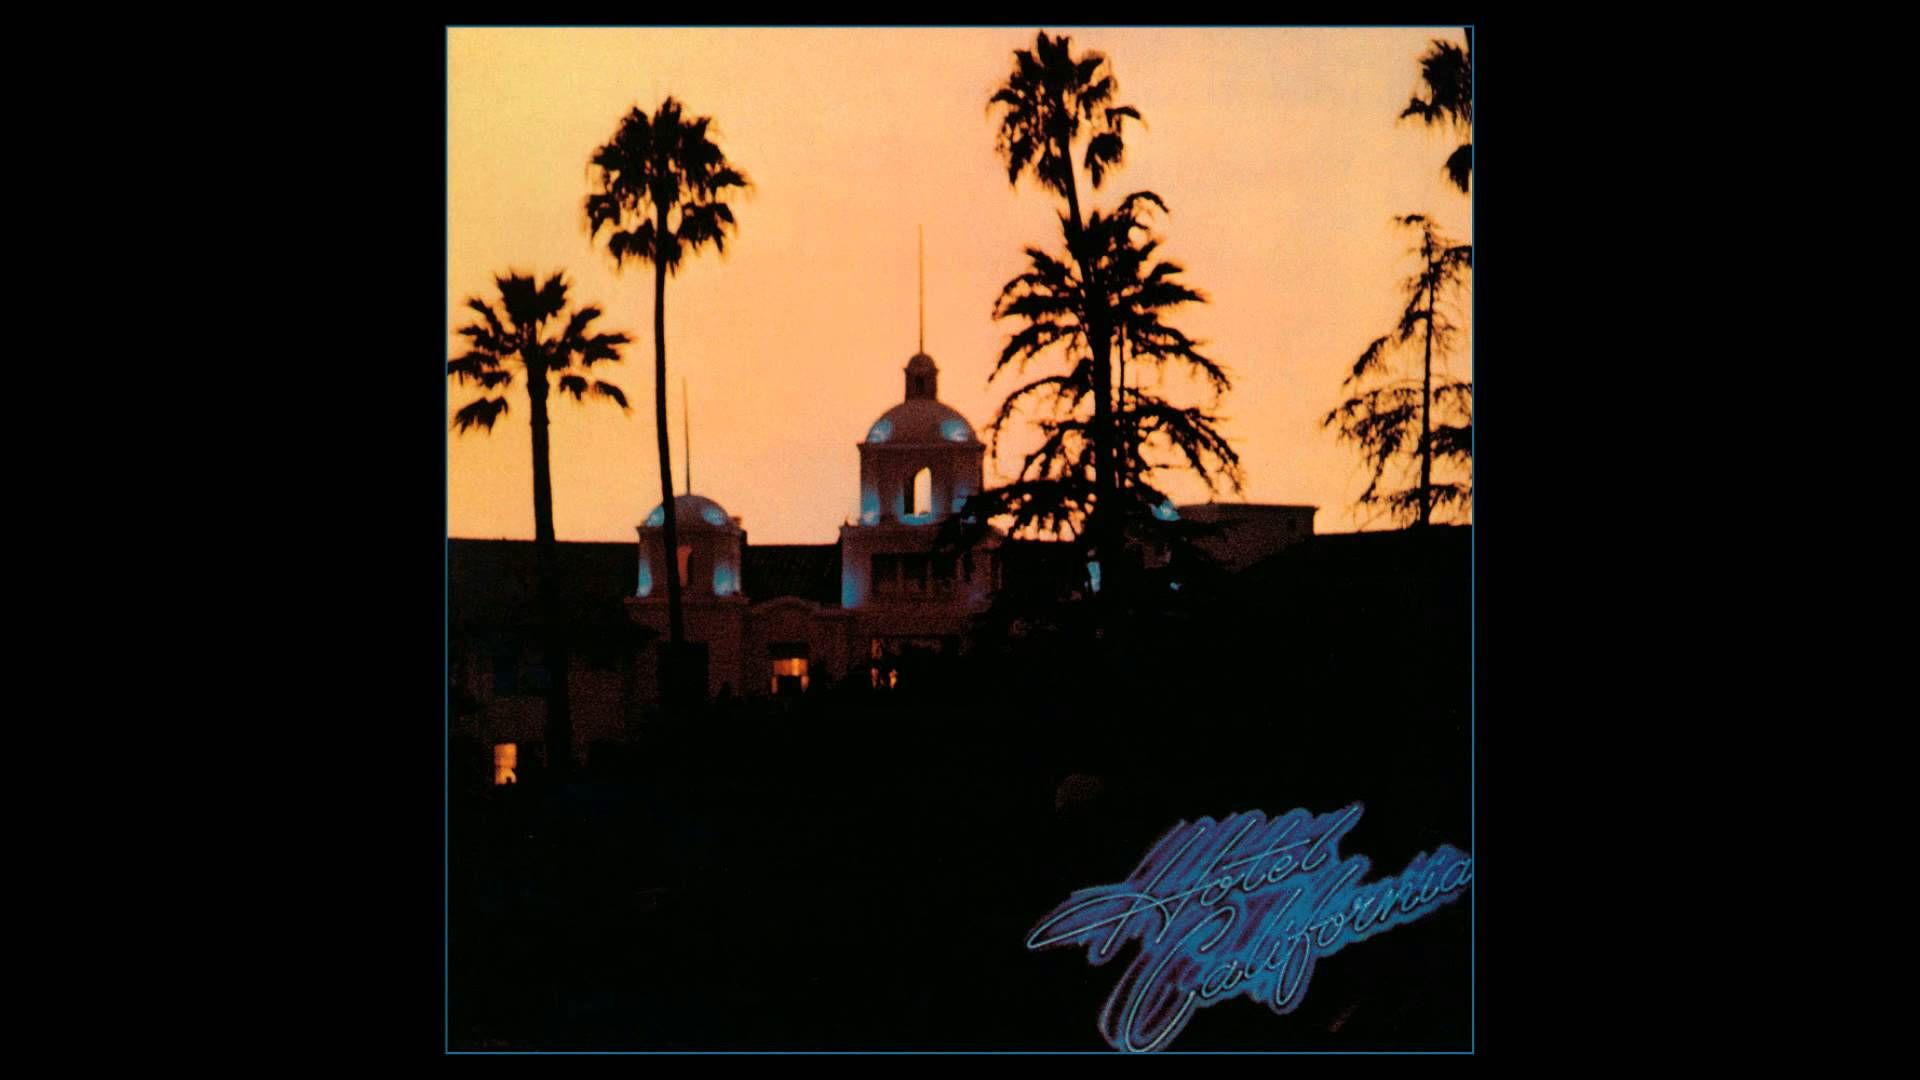 The Eagles Hotel California Full Album Hd 1080p Video 48khz